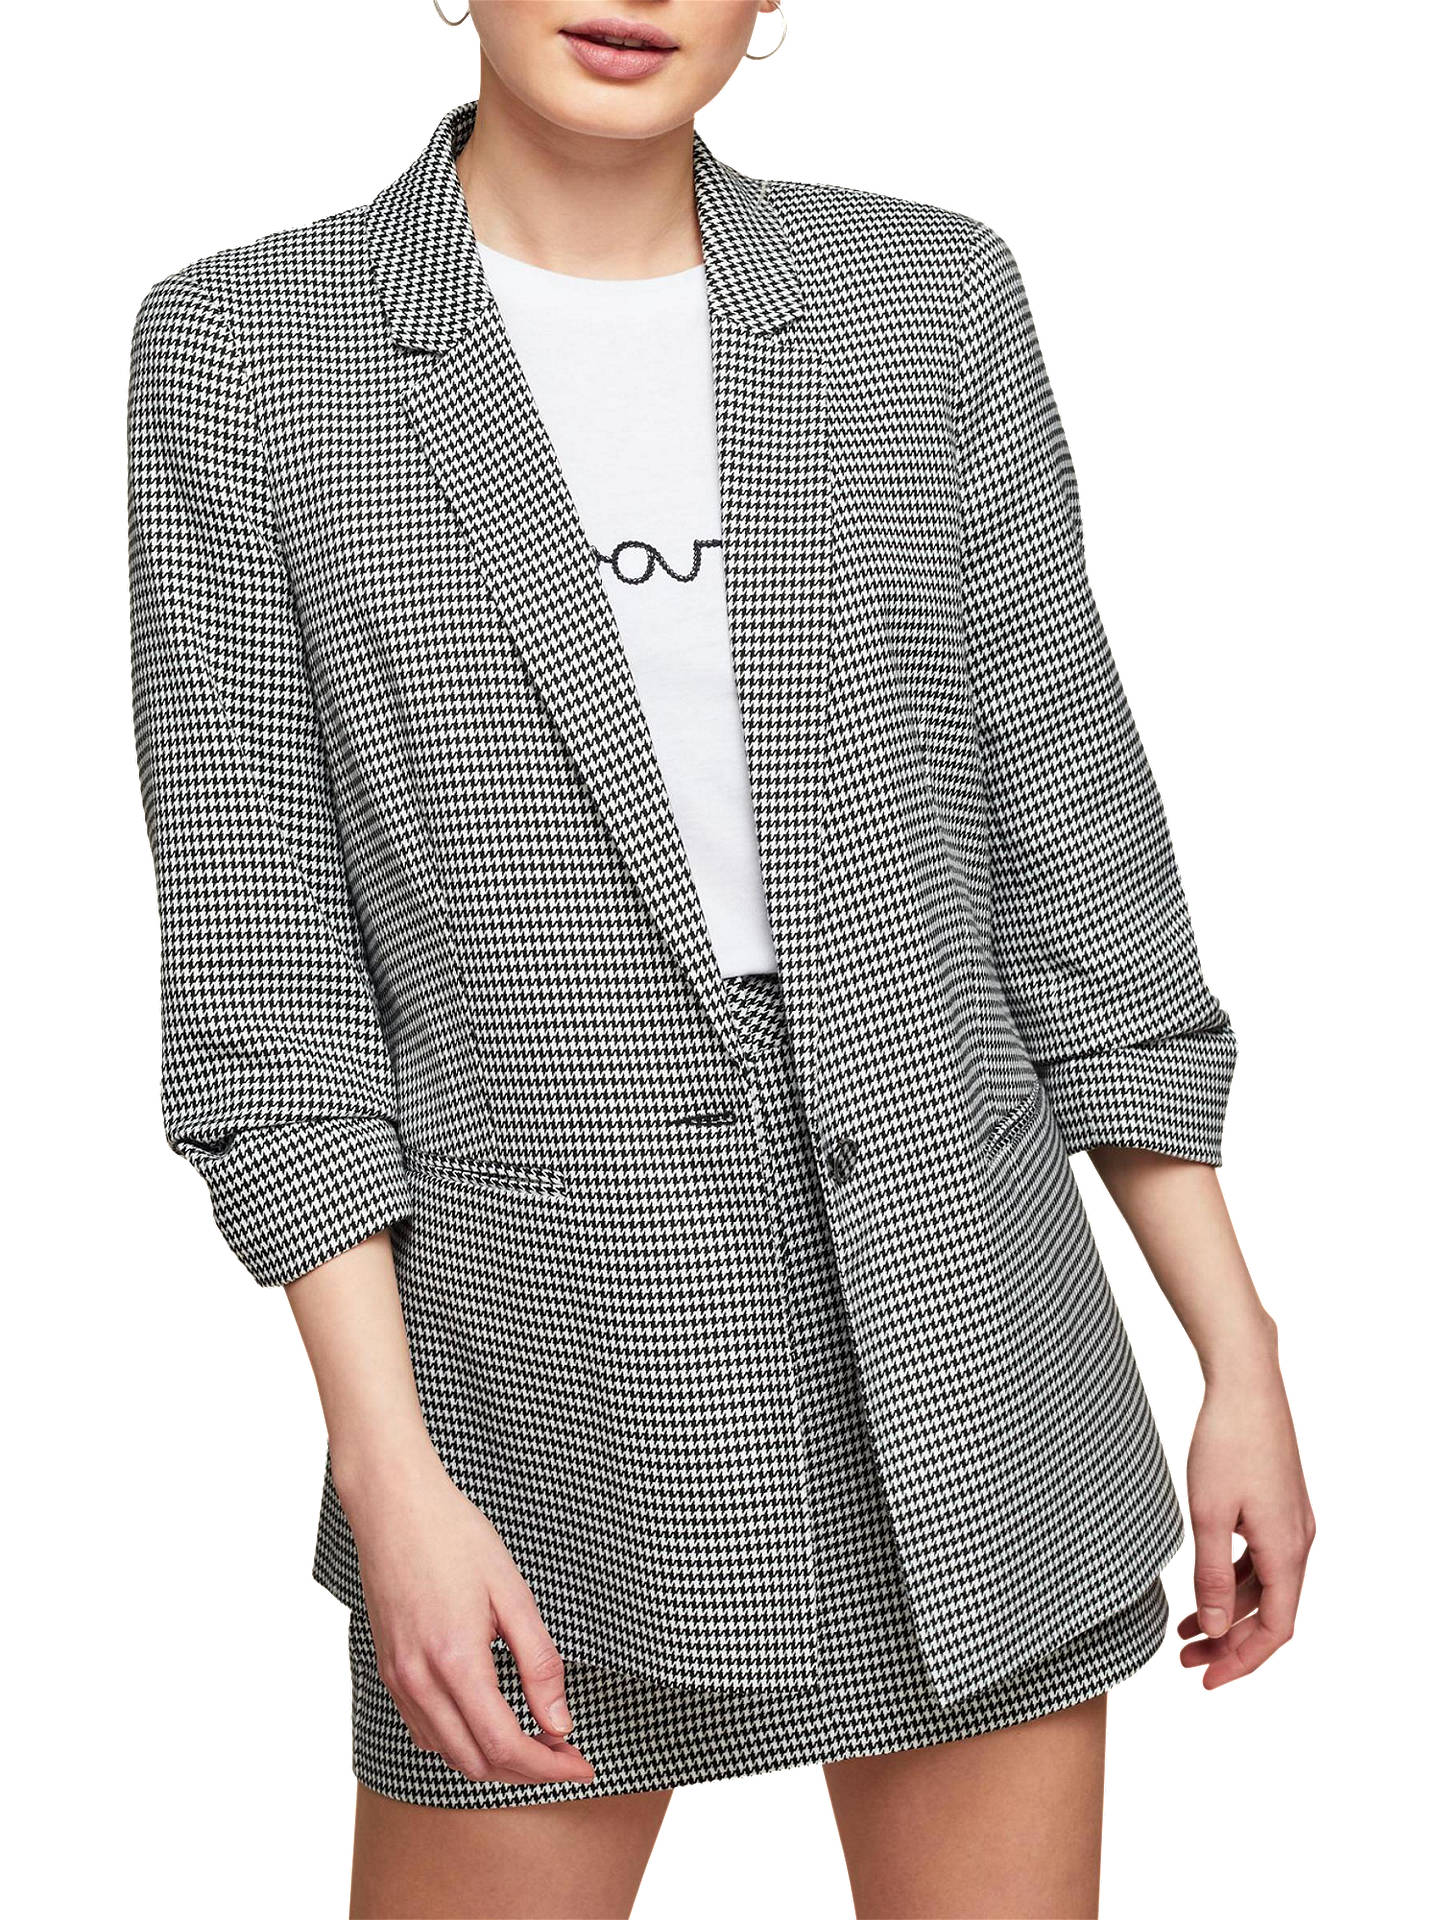 a868bb115 Miss Selfridge Petite Dogtooth Check Blazer, Black/White at John ...